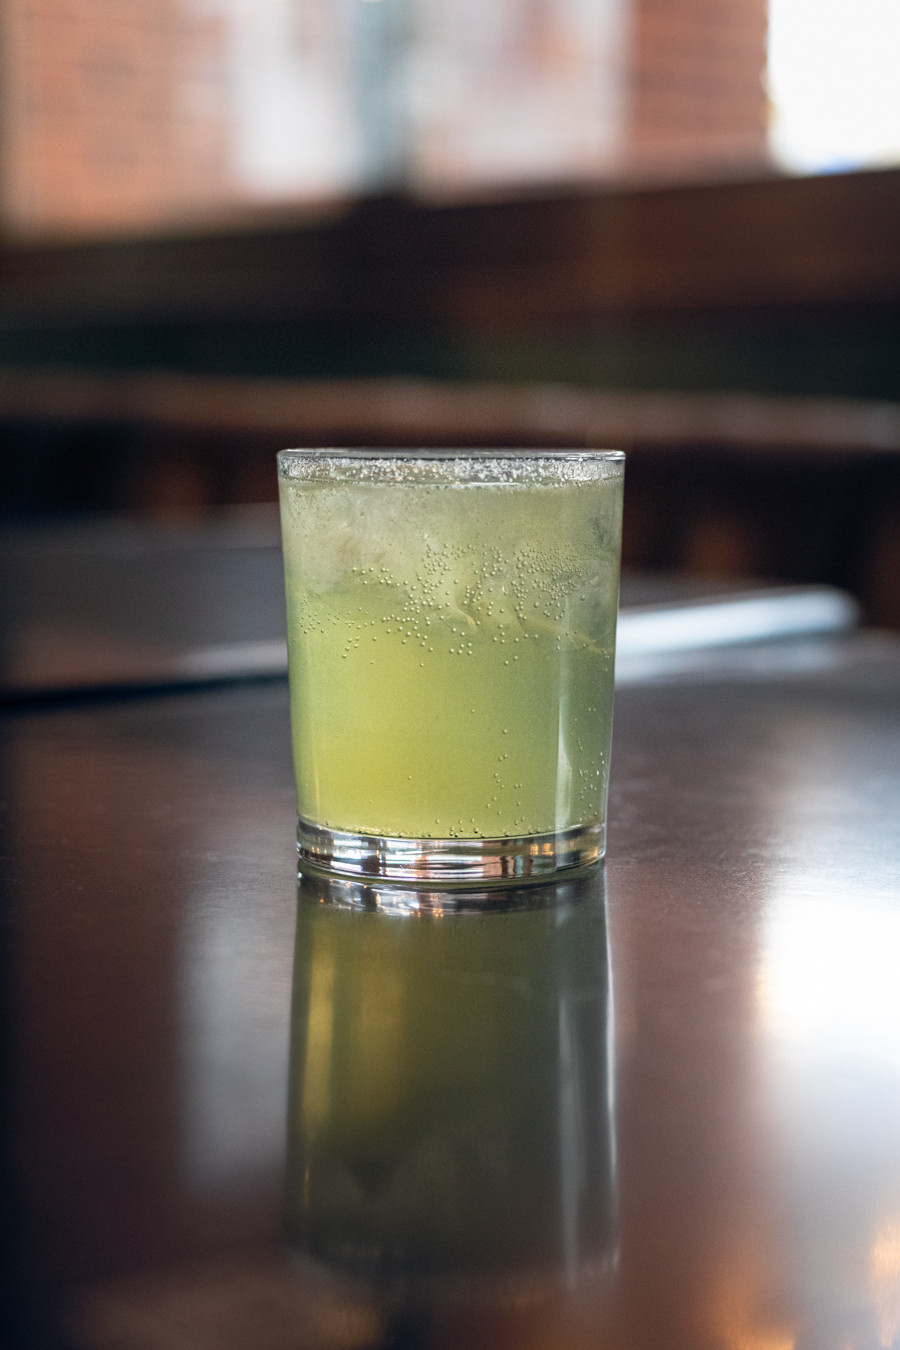 Cocktail Green Light, made by John Fairholm in Calgary.